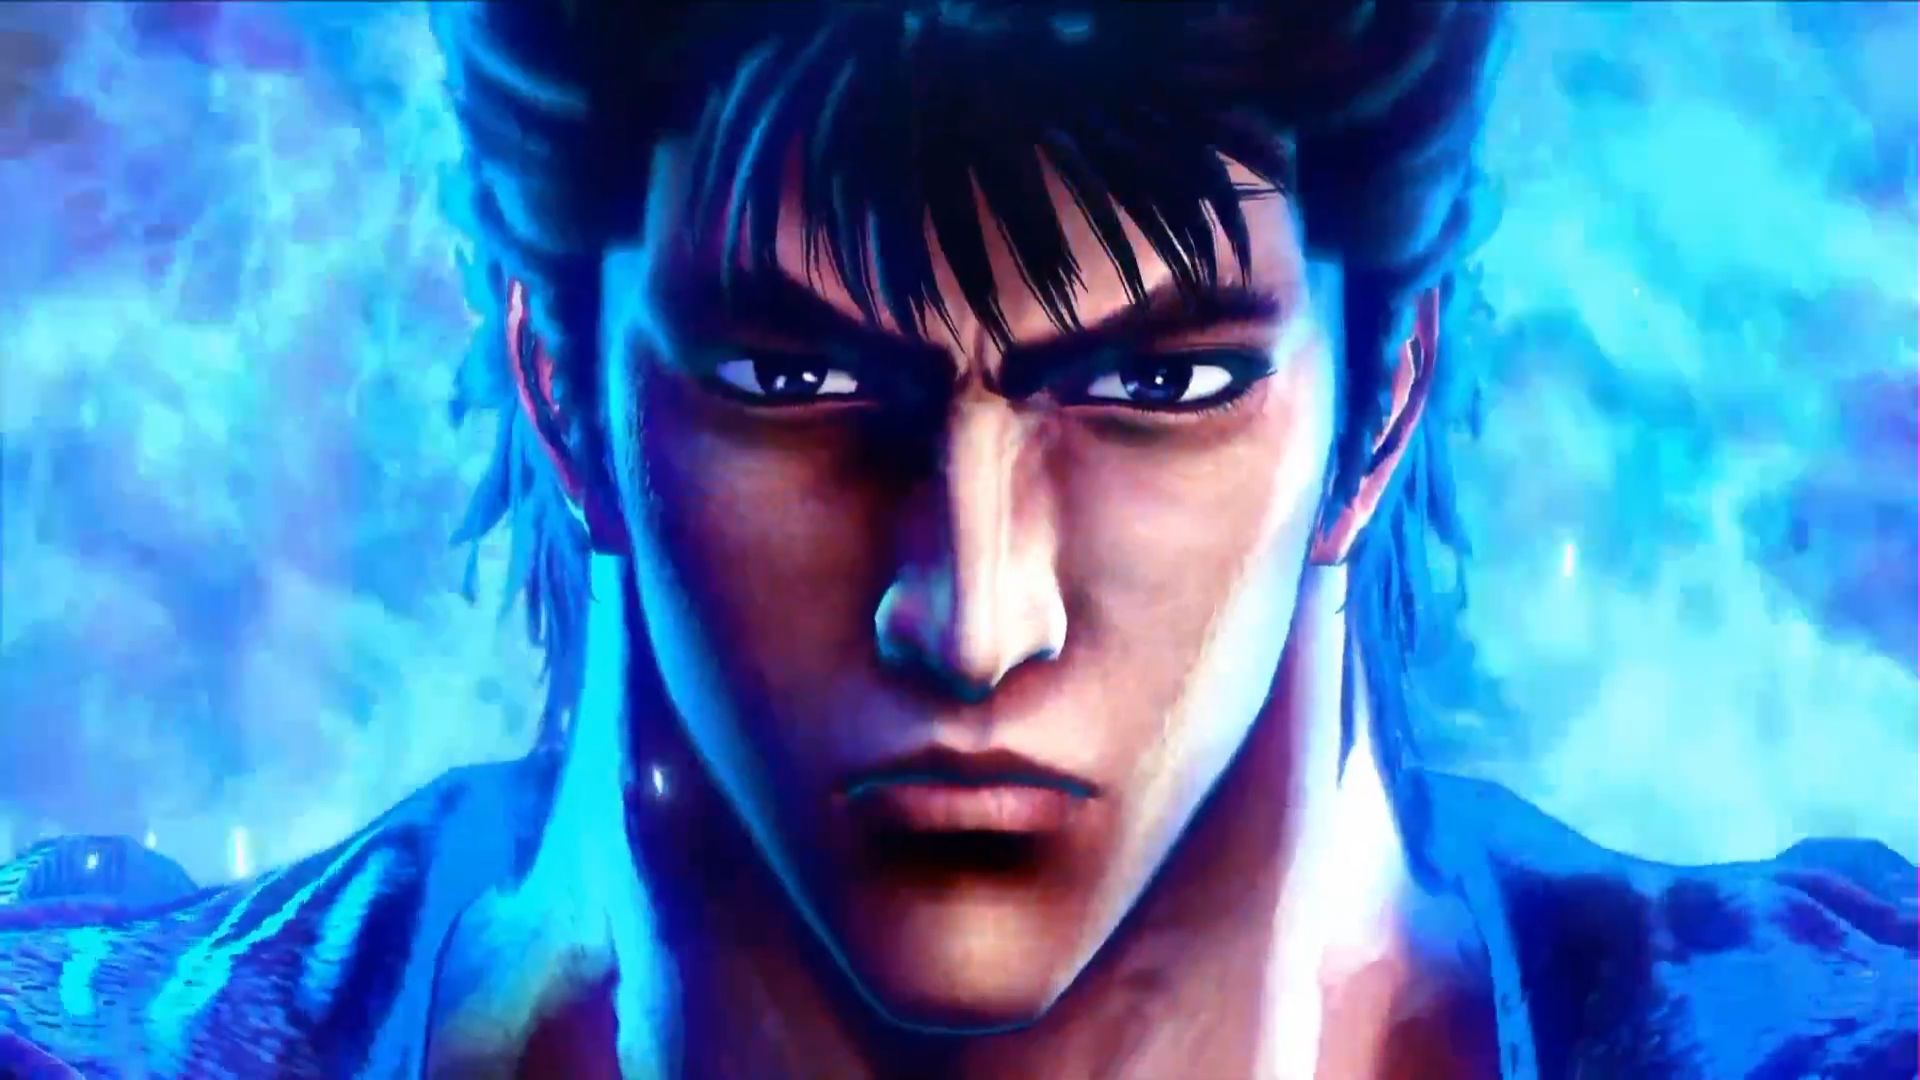 PS4 Exclusive Fist of the North Star Lost Paradise Looks Awesome 1920x1080